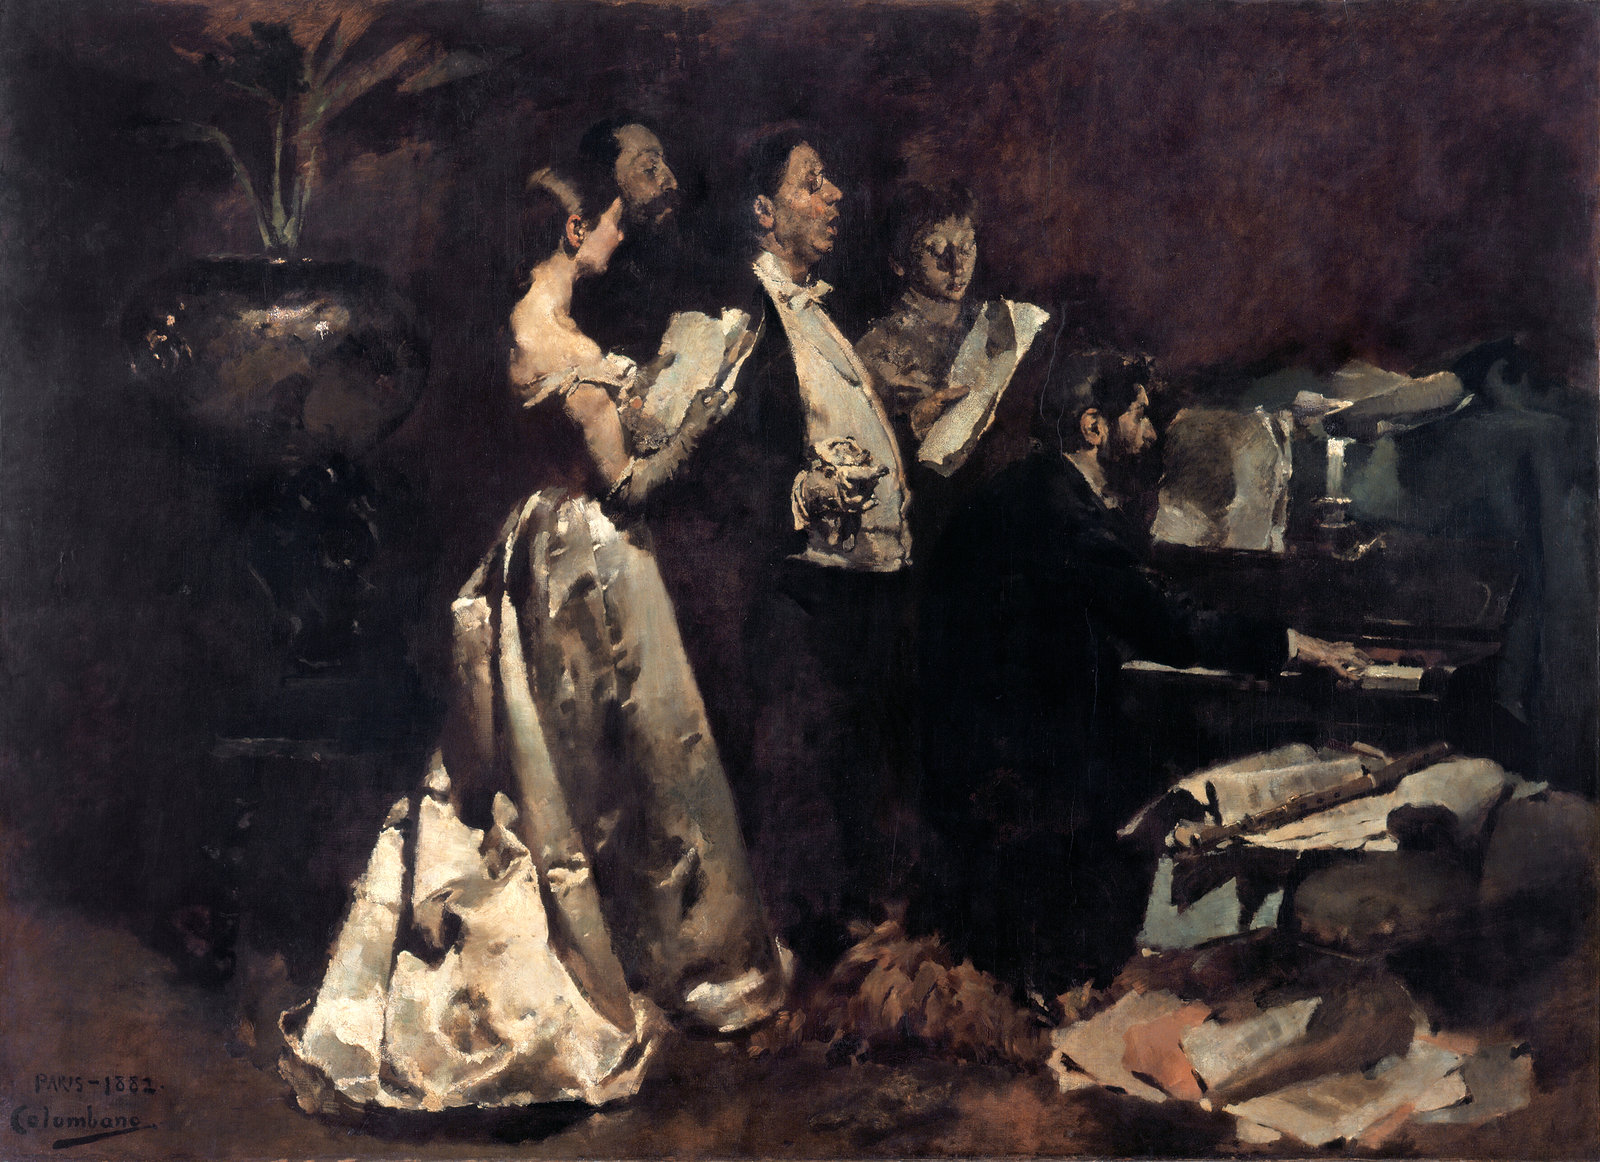 An Amateur Concert, 1882, Columbano Bordalo Pinheiro, Museu do Chiado – Museu Nacional de Arte Contemporânea, Public Domain Mark